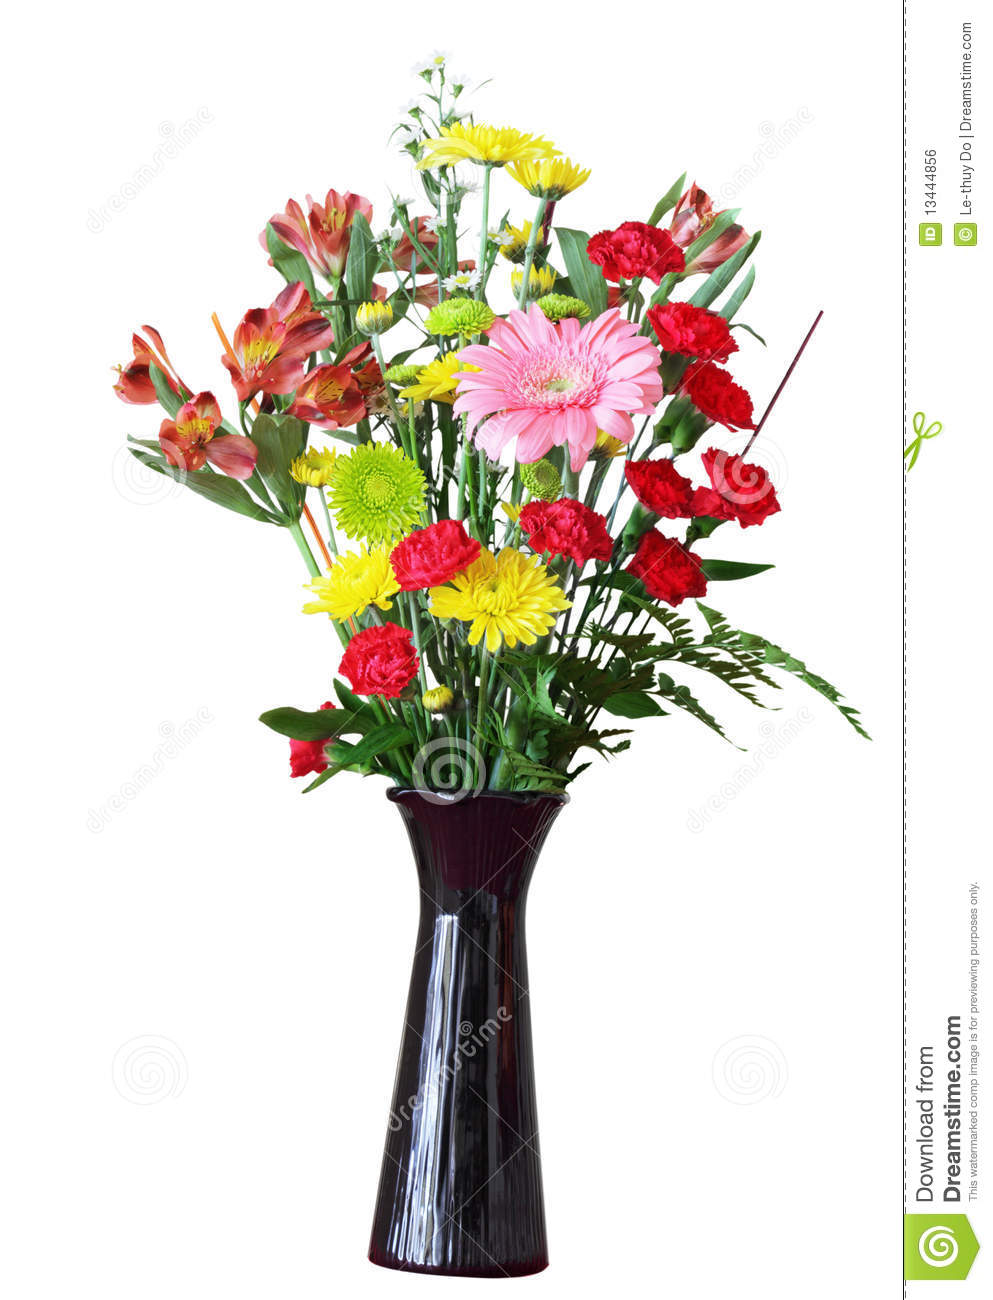 Flowers in the vase stock photo image of bouquet flower 13444856 flowers in the vase reviewsmspy